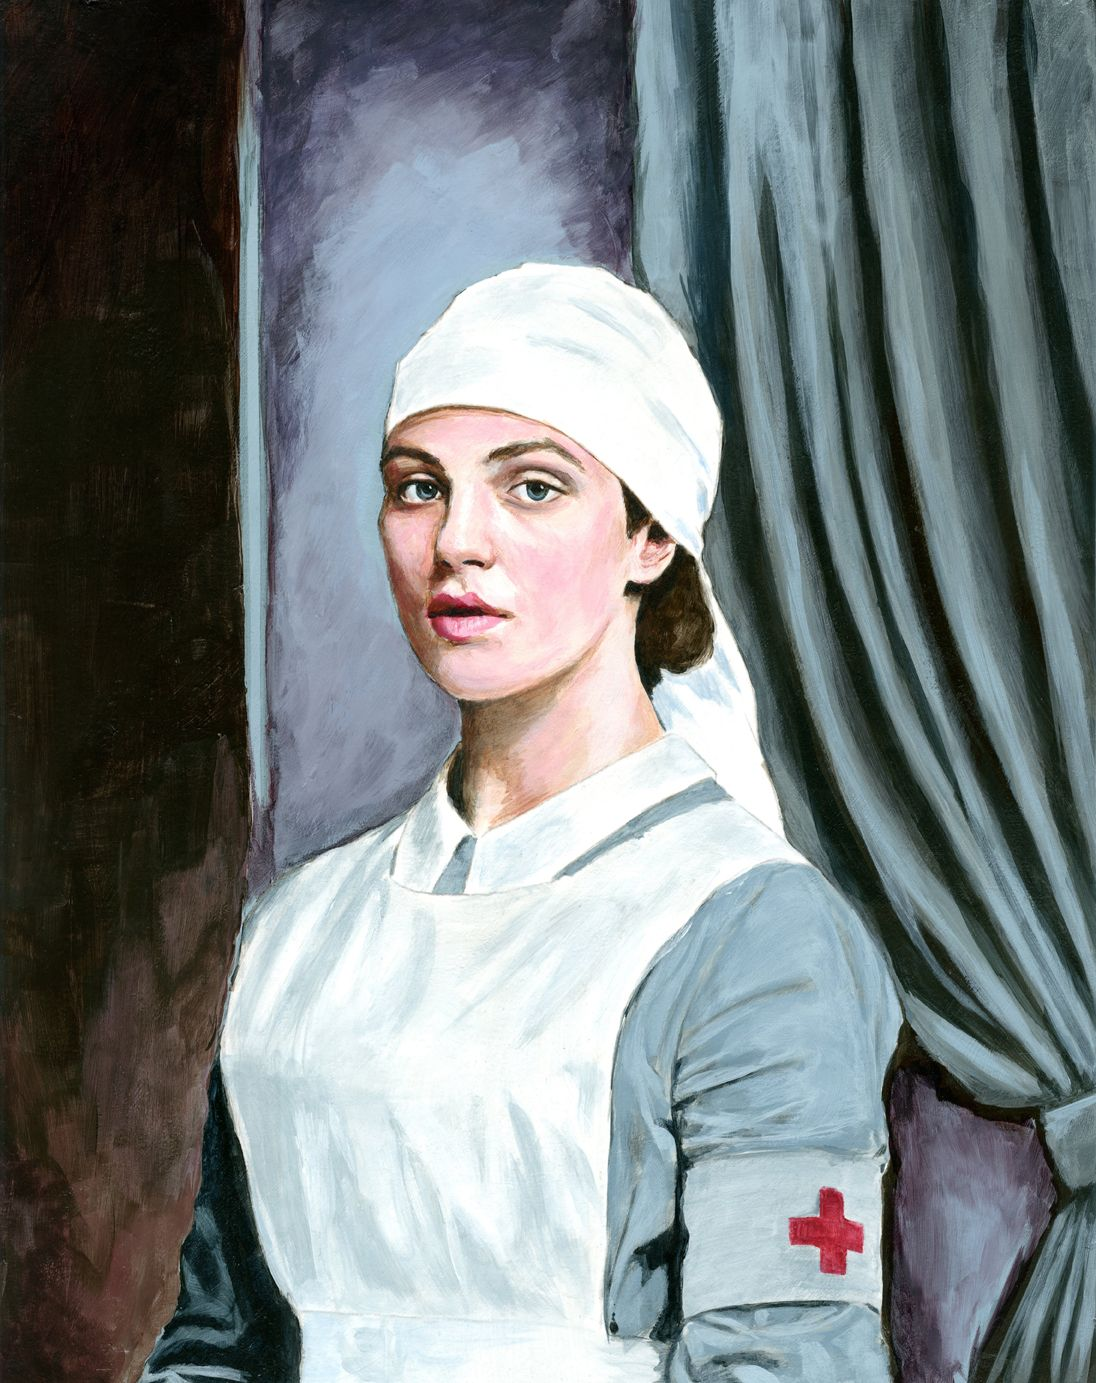 A painting I did of Lady Sybil Crawley from Downton Abbey. I love portrait painting now, I can't wait to do more!